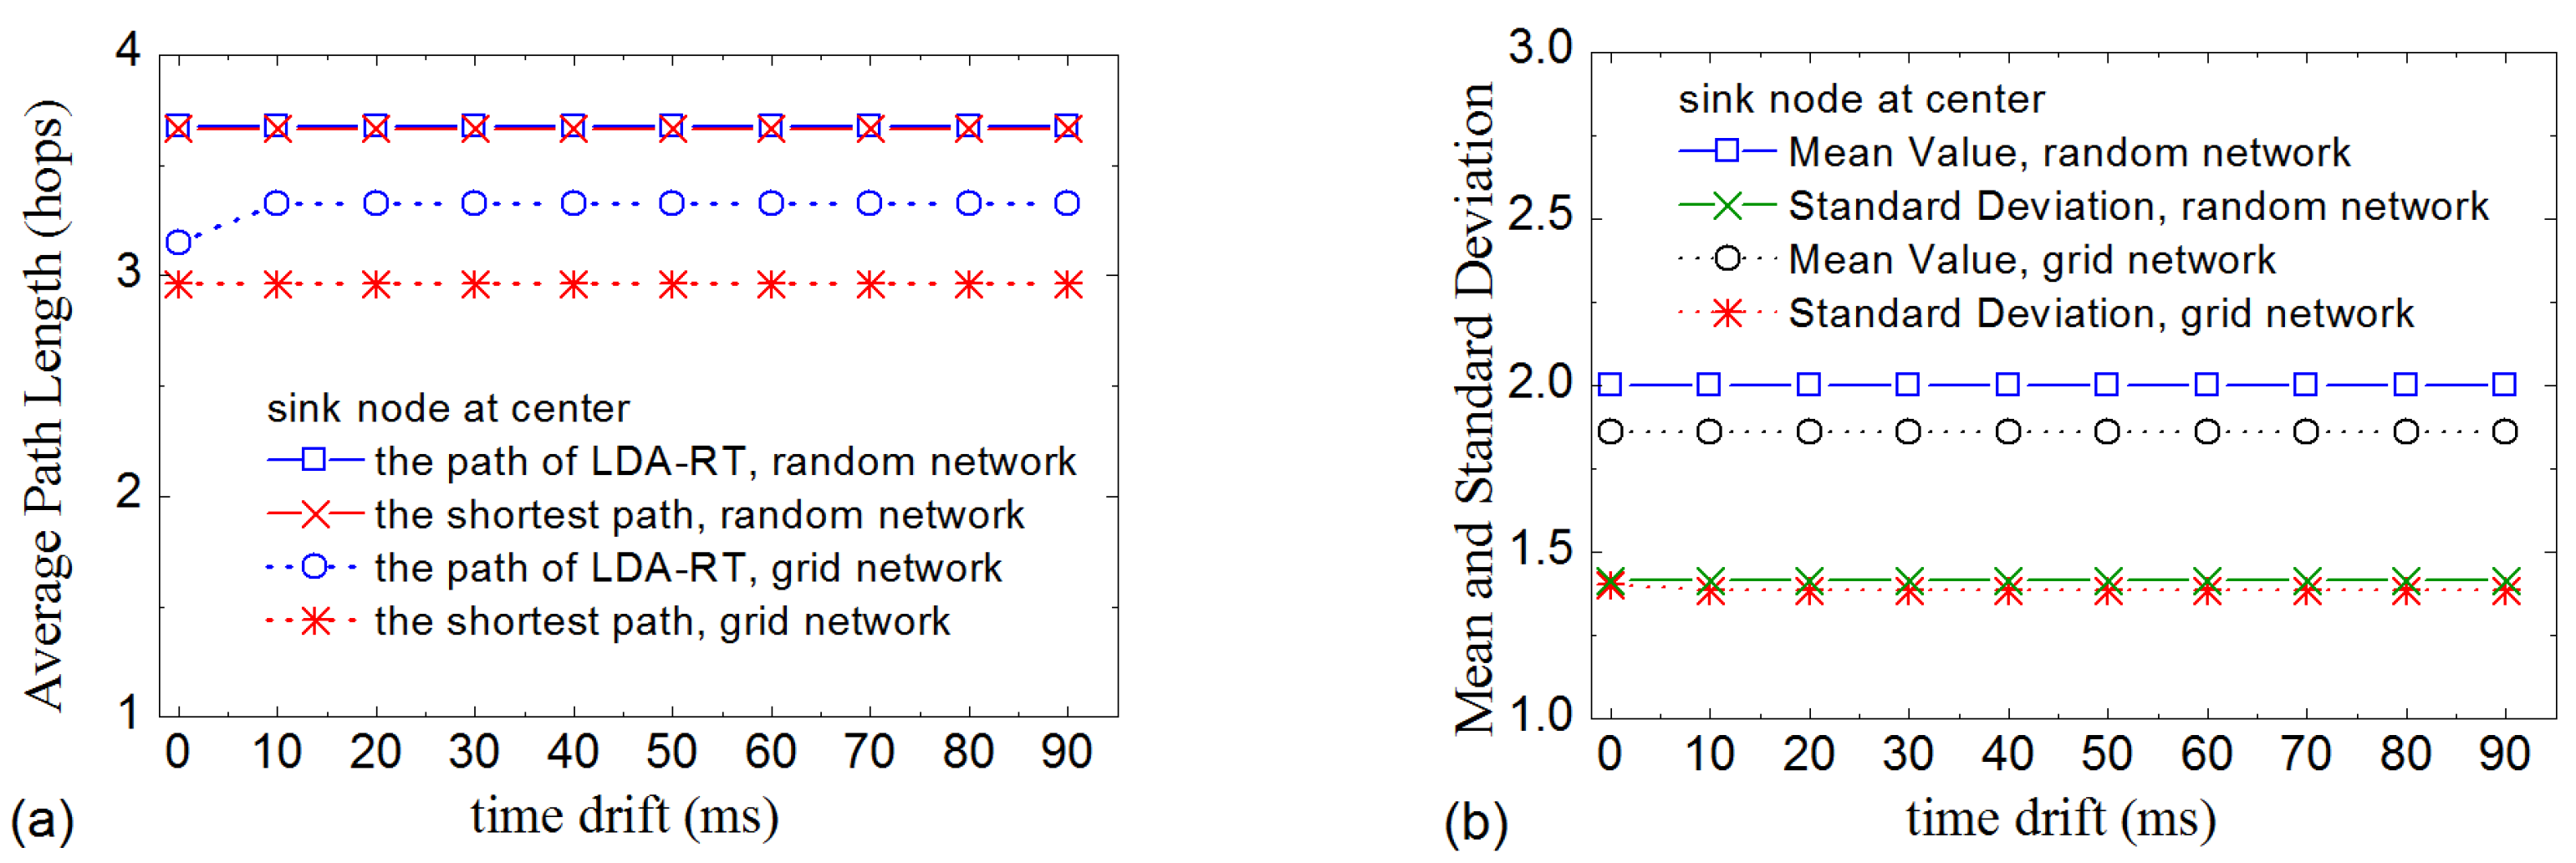 Sensors | Free Full-Text | A Method of Data Aggregation for Wearable